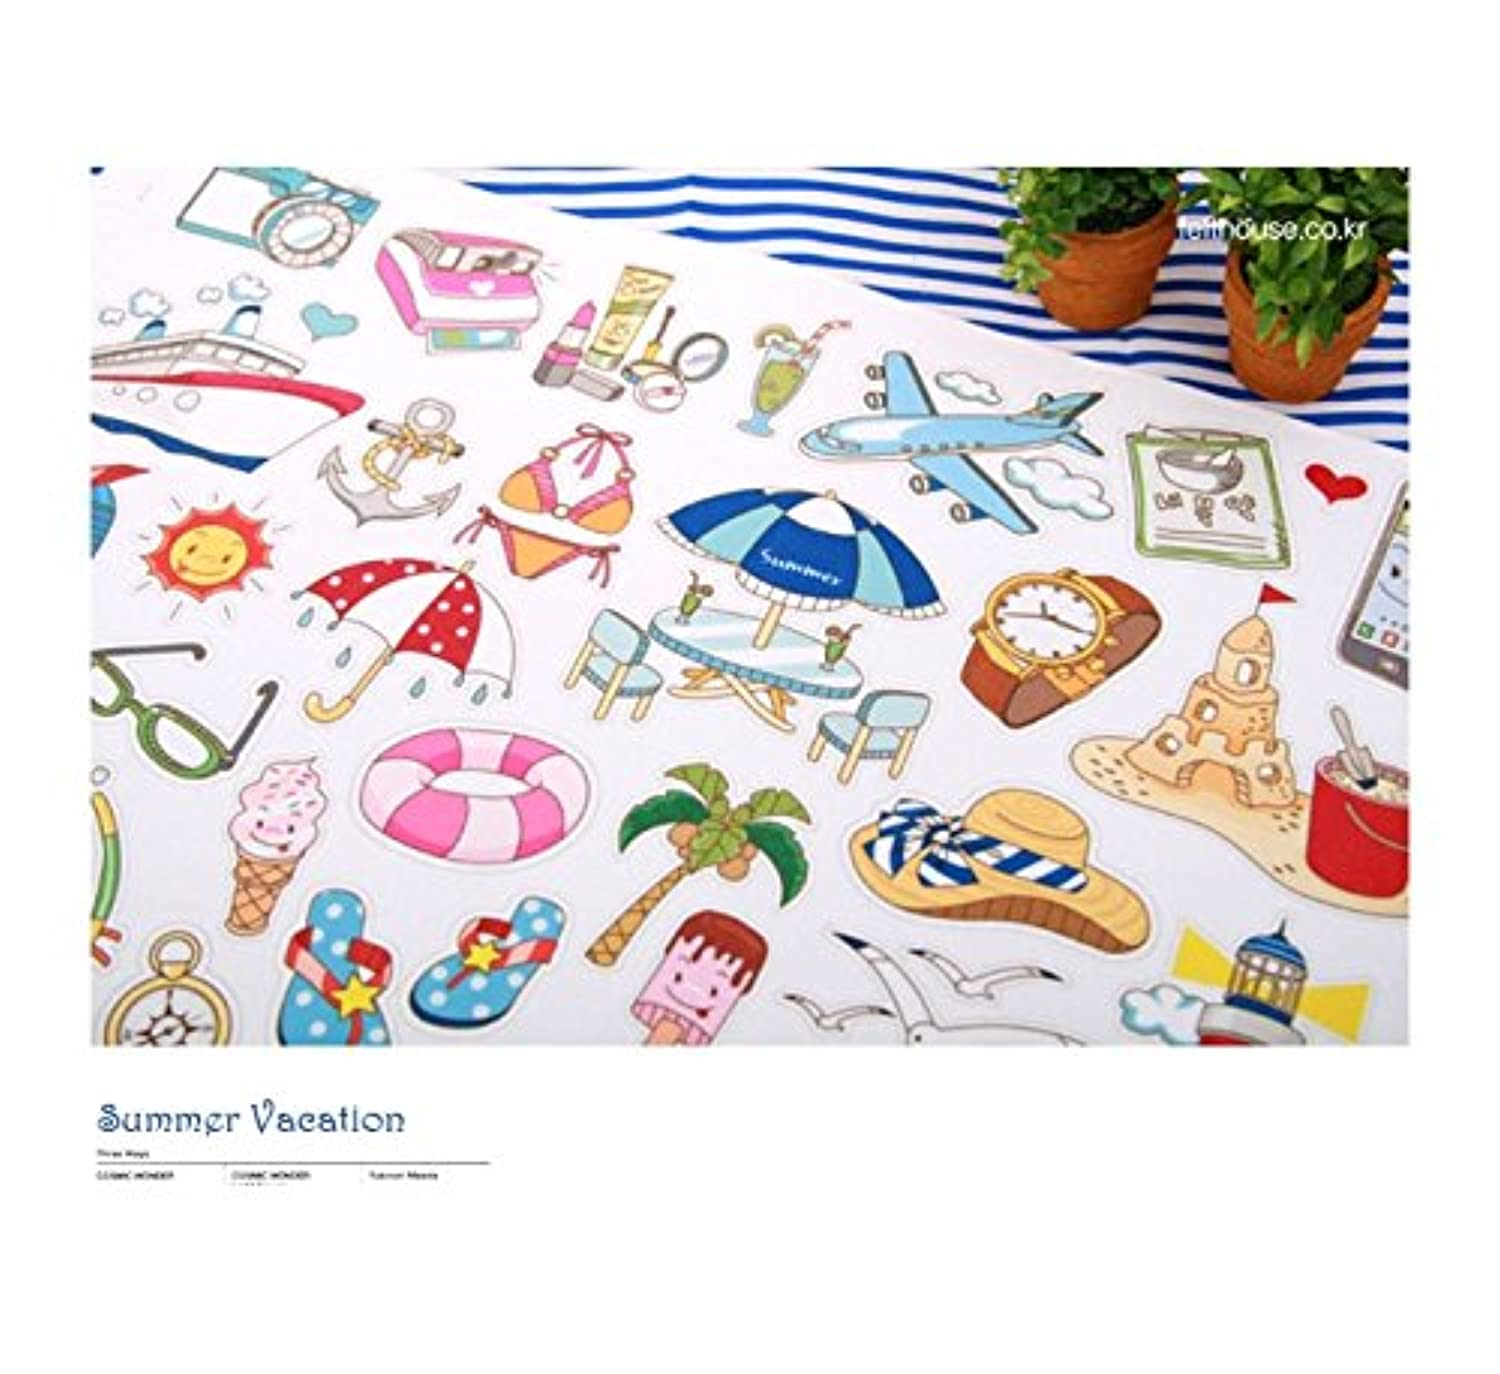 Korea Toy - Summer Vacation hard paper 801 color